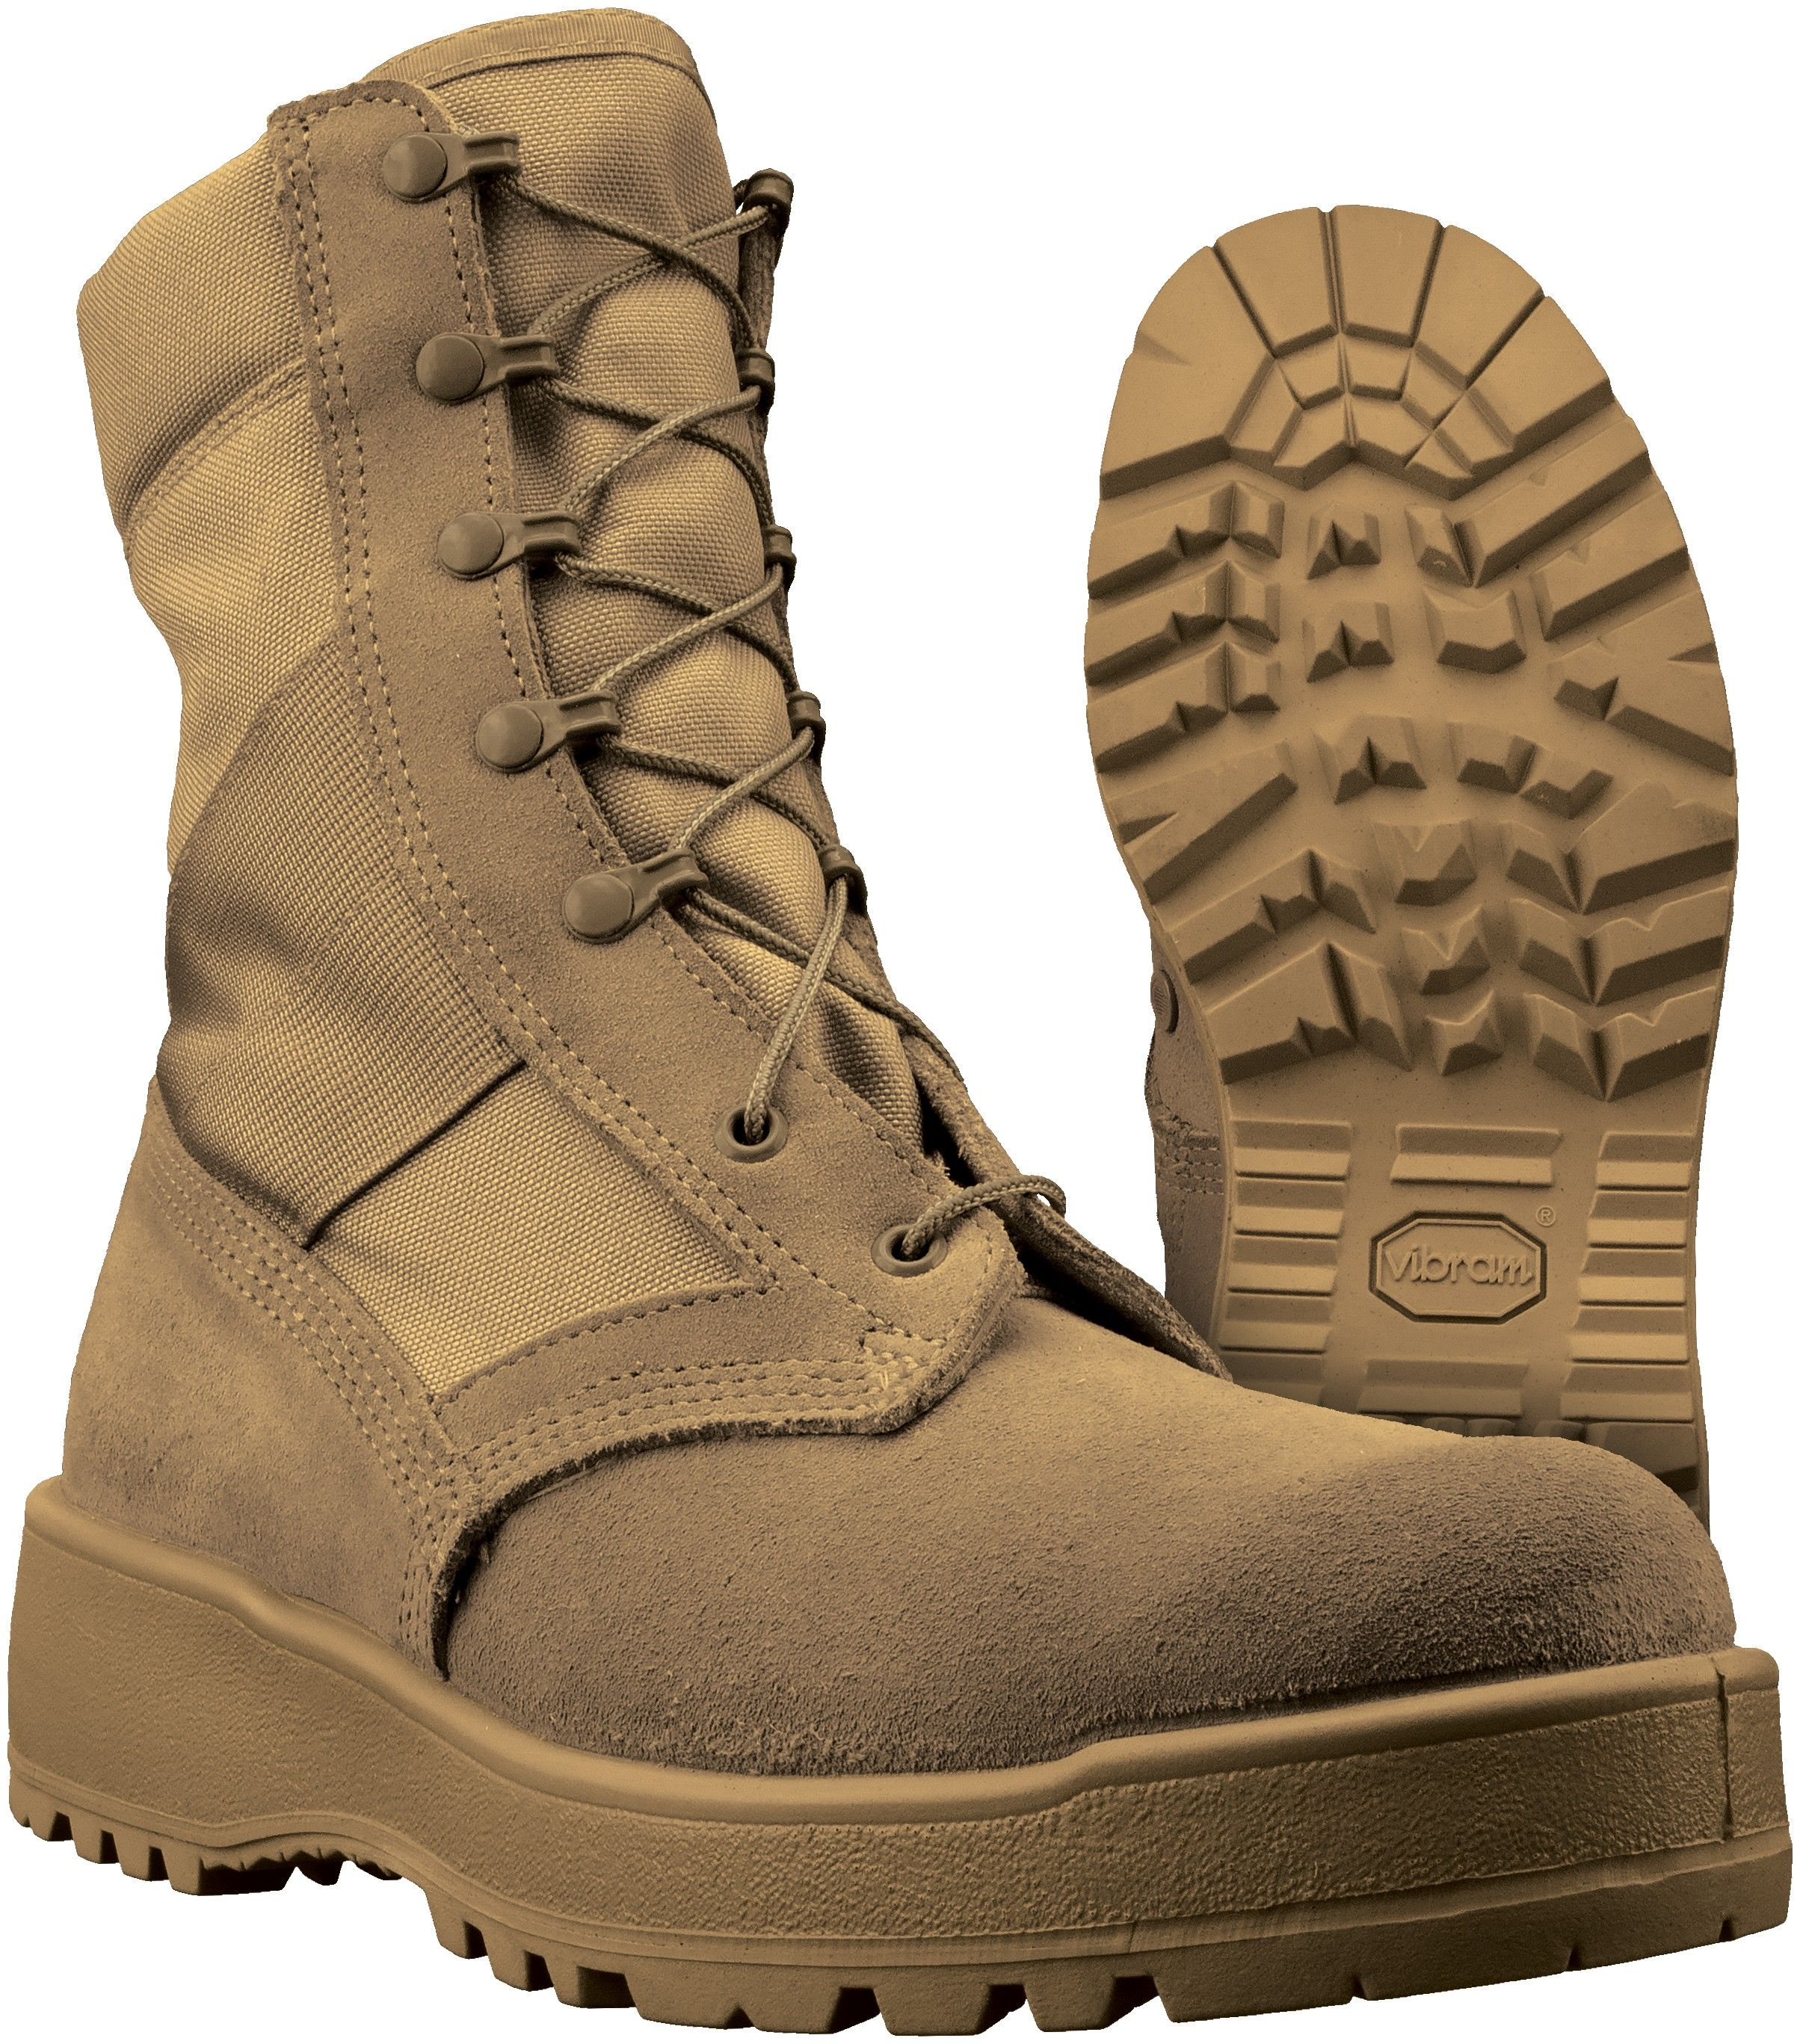 91322ec6ea97 Mil Spec CP1 Hot Weather Boots from Altama